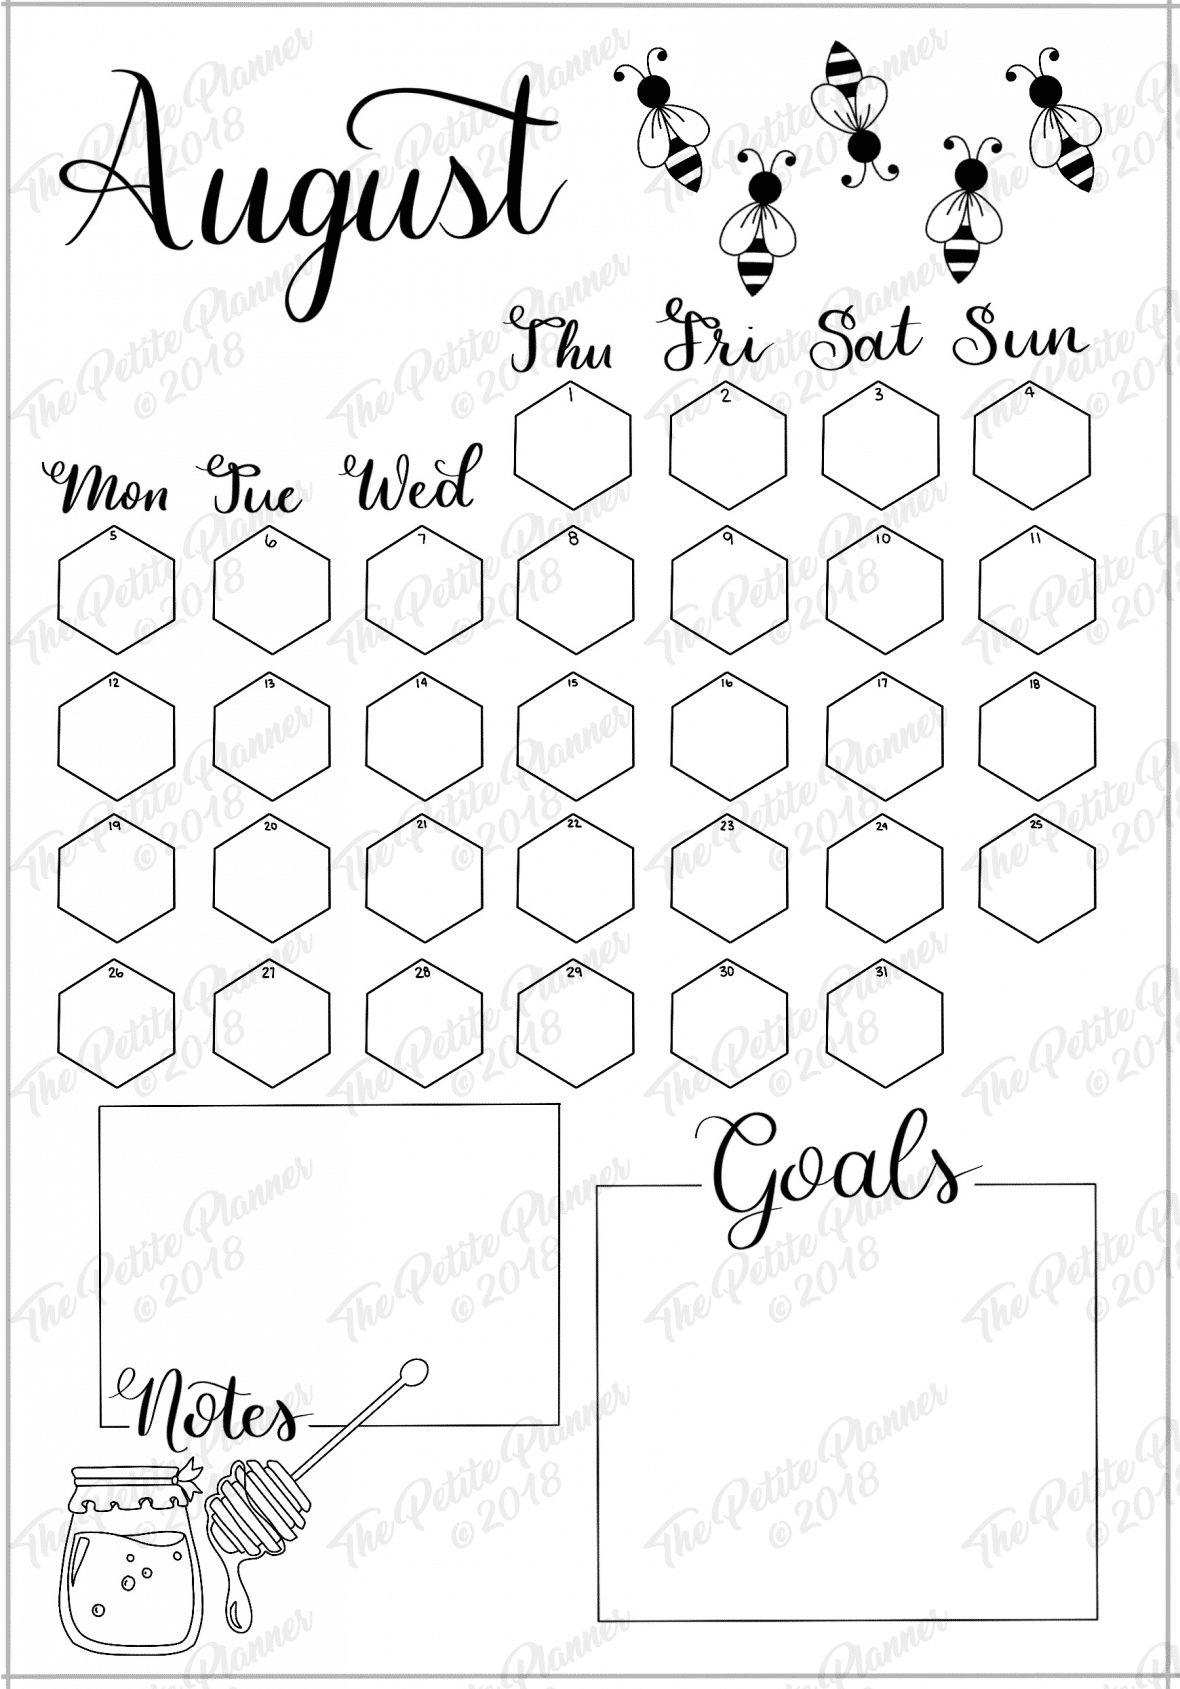 image regarding Bullet Journal Calendar Printable referred to as August 2019 Printable Bullet Magazine Set up